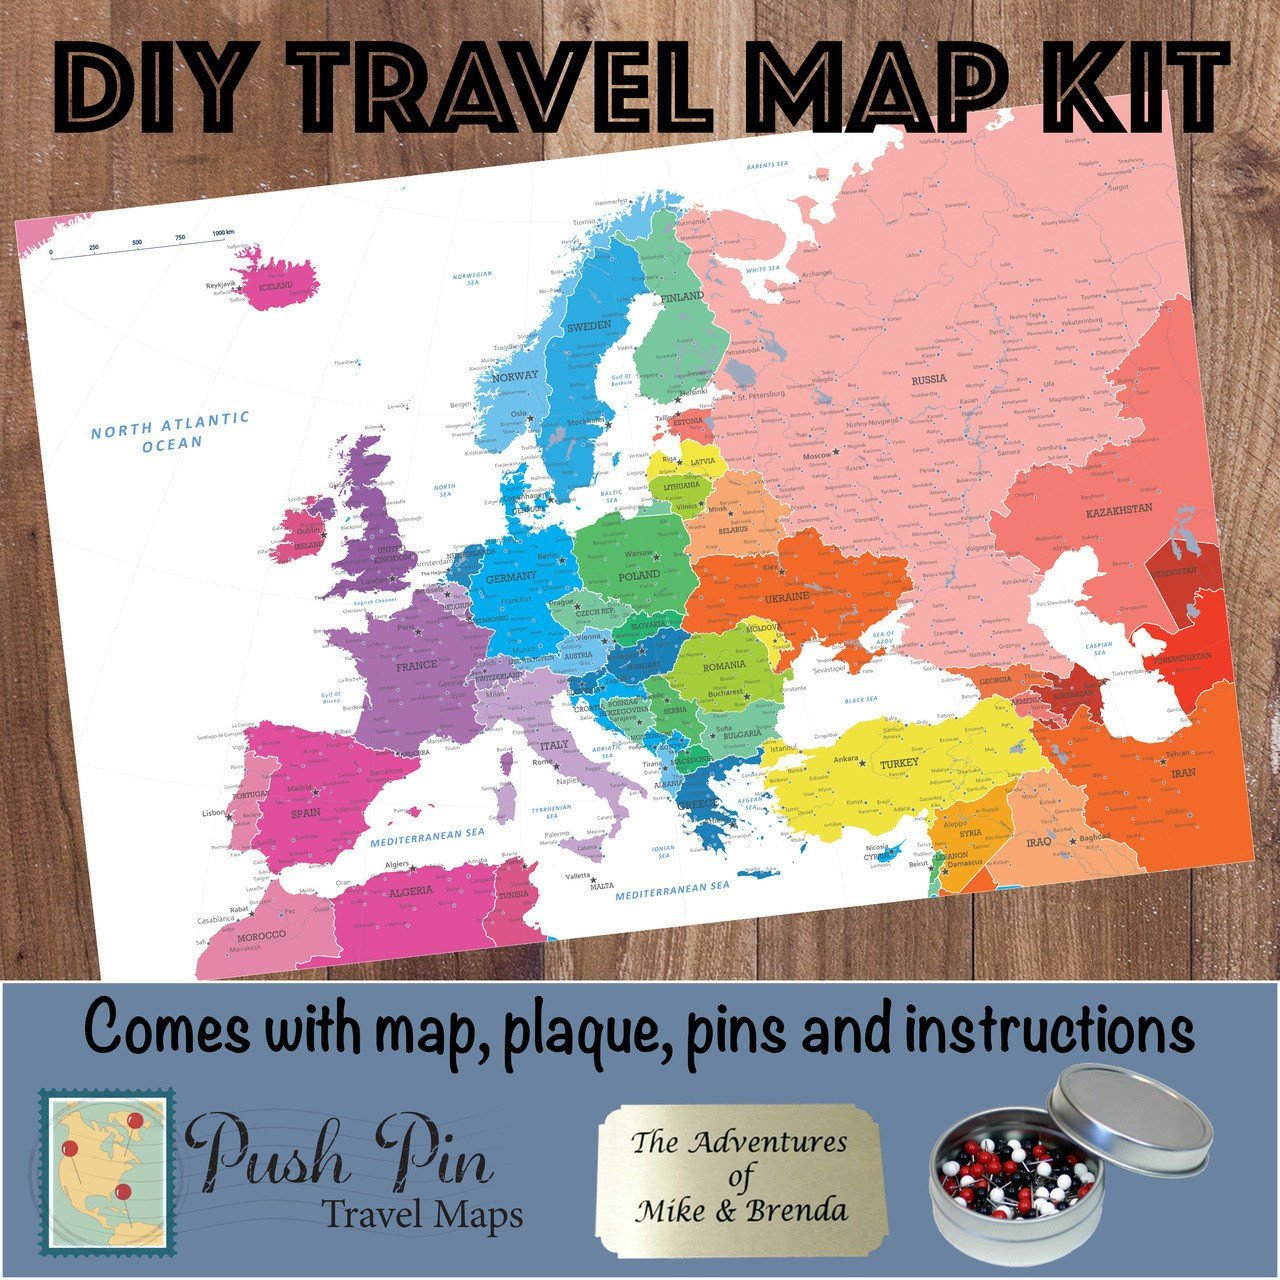 Diy colorful map of europe europe travel map push pin travel maps close up colorful europe travel map kit gumiabroncs Choice Image